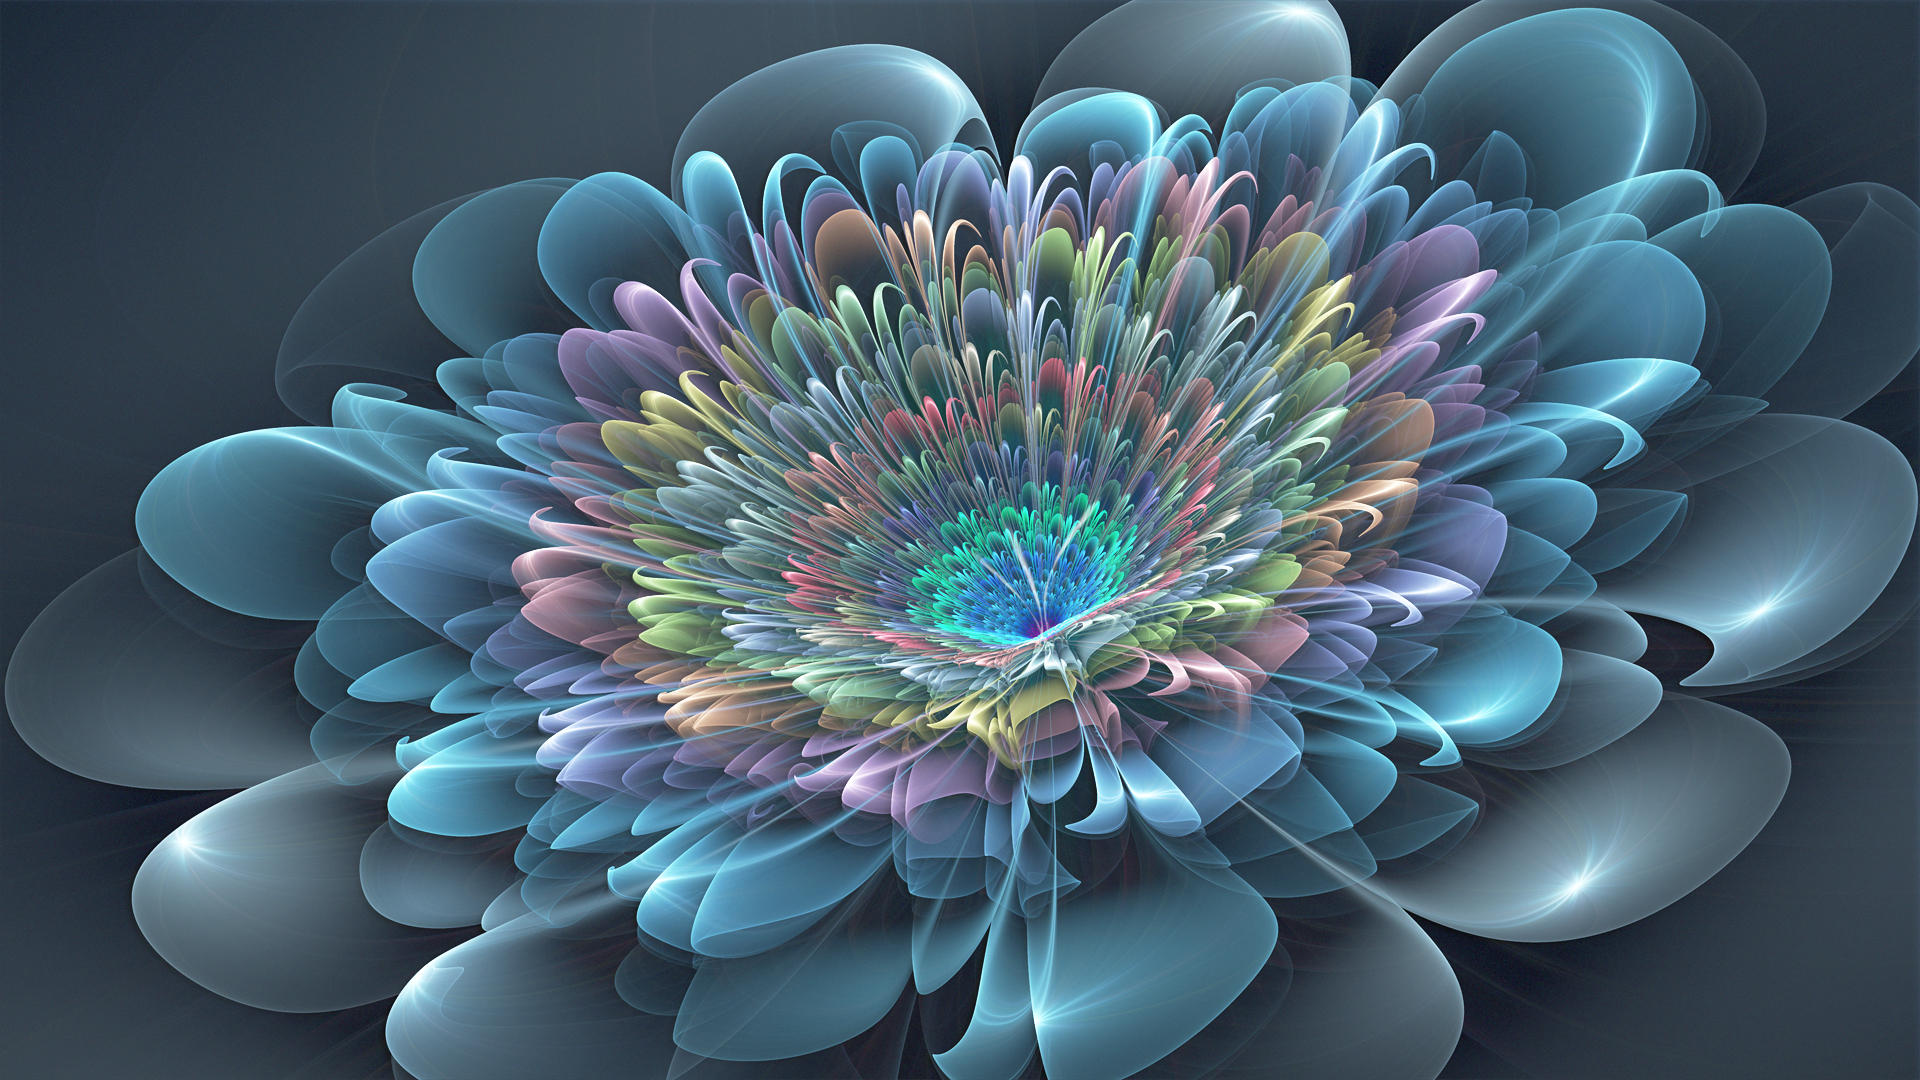 Multifacet Flower by Frankief